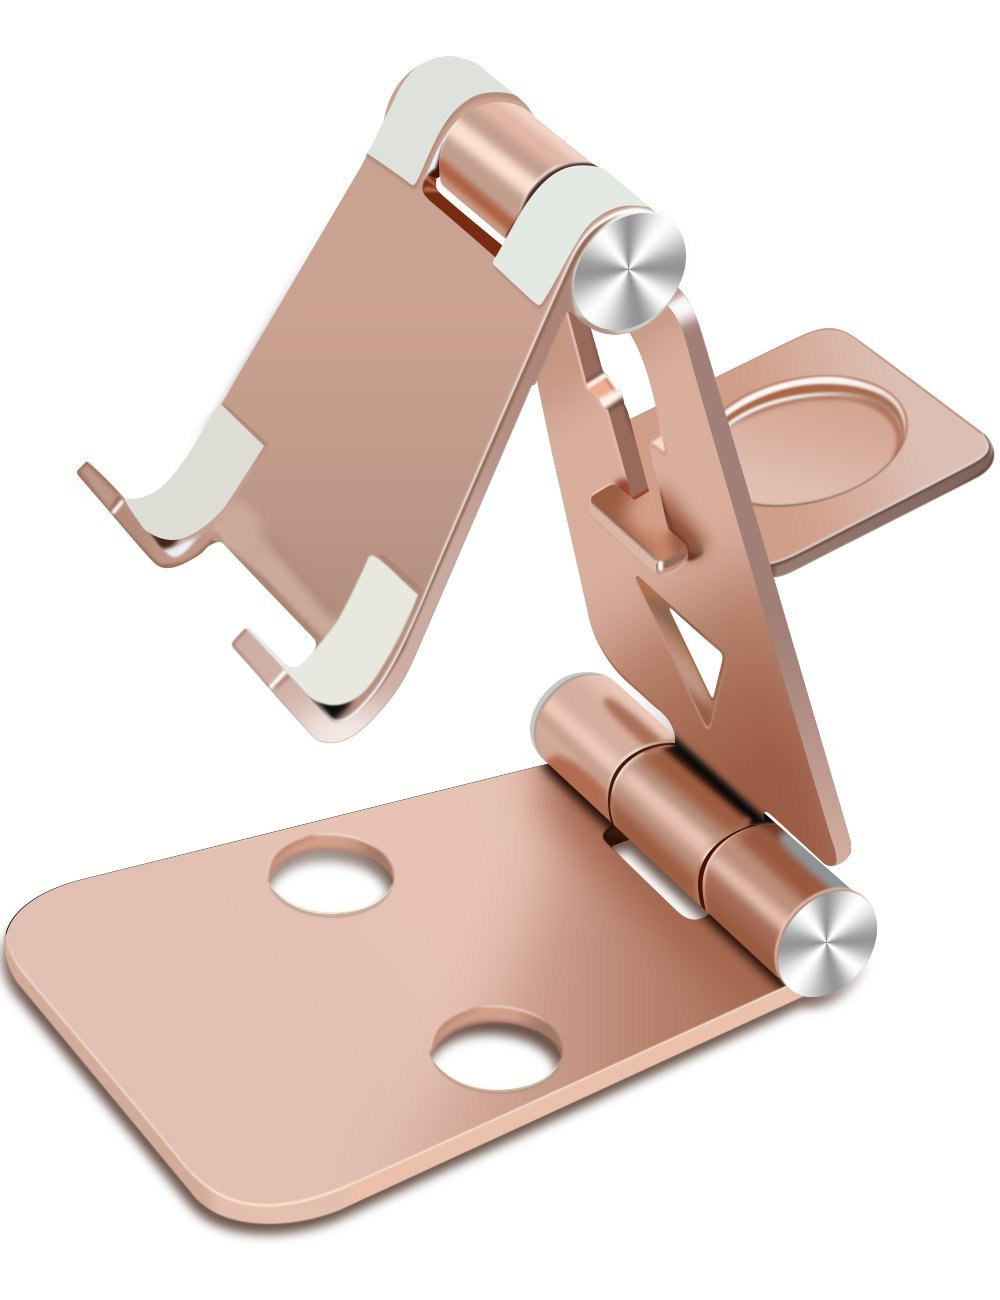 iPhone 6s Stand, iPad Stand, iMangoo Multi-angle Stand Samsung Holder Tablet Dock Adjustable Foldable Cradle Portable Desk Tablet Kickstand Phone Stands Holders for Apple Watch iPhone iPad Rose Gold